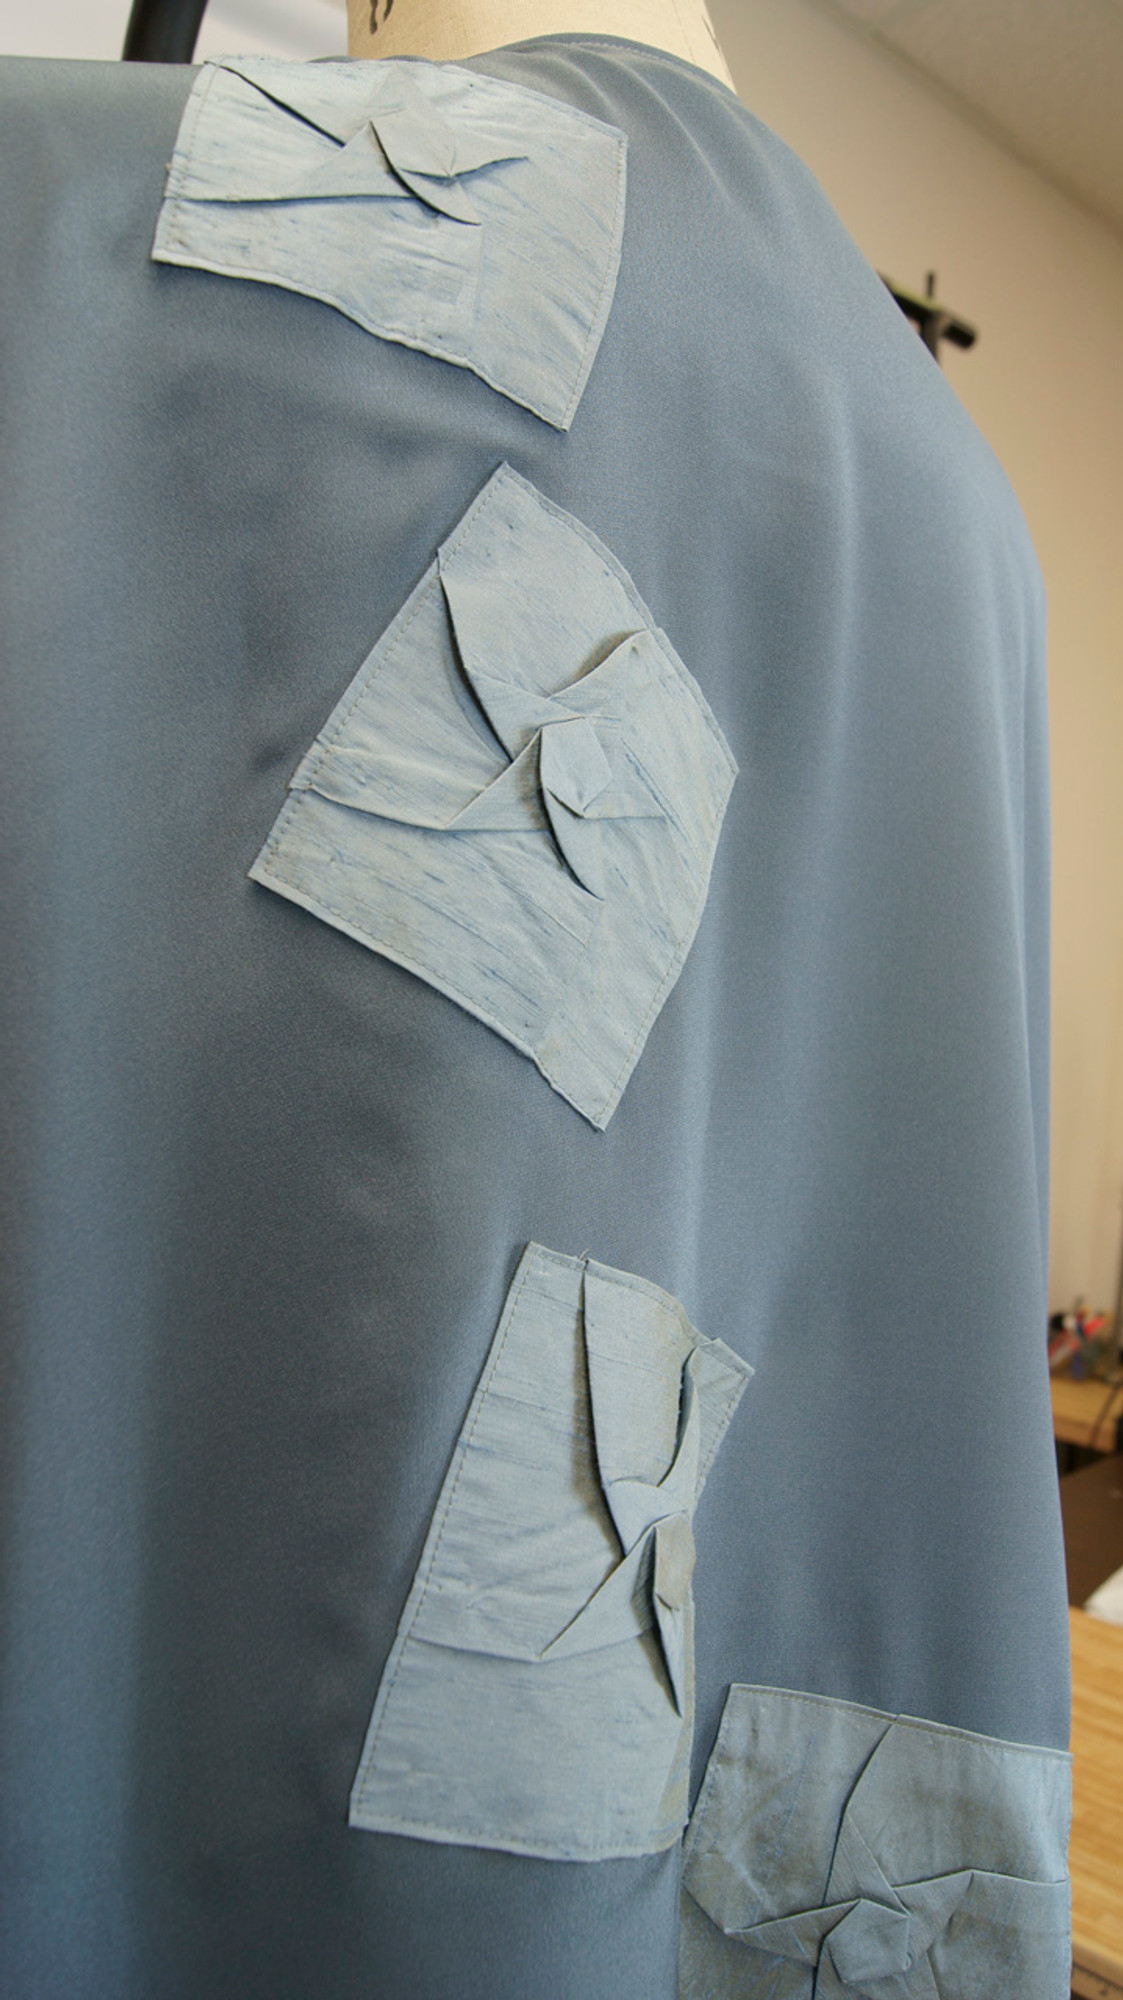 Origami appliques on back